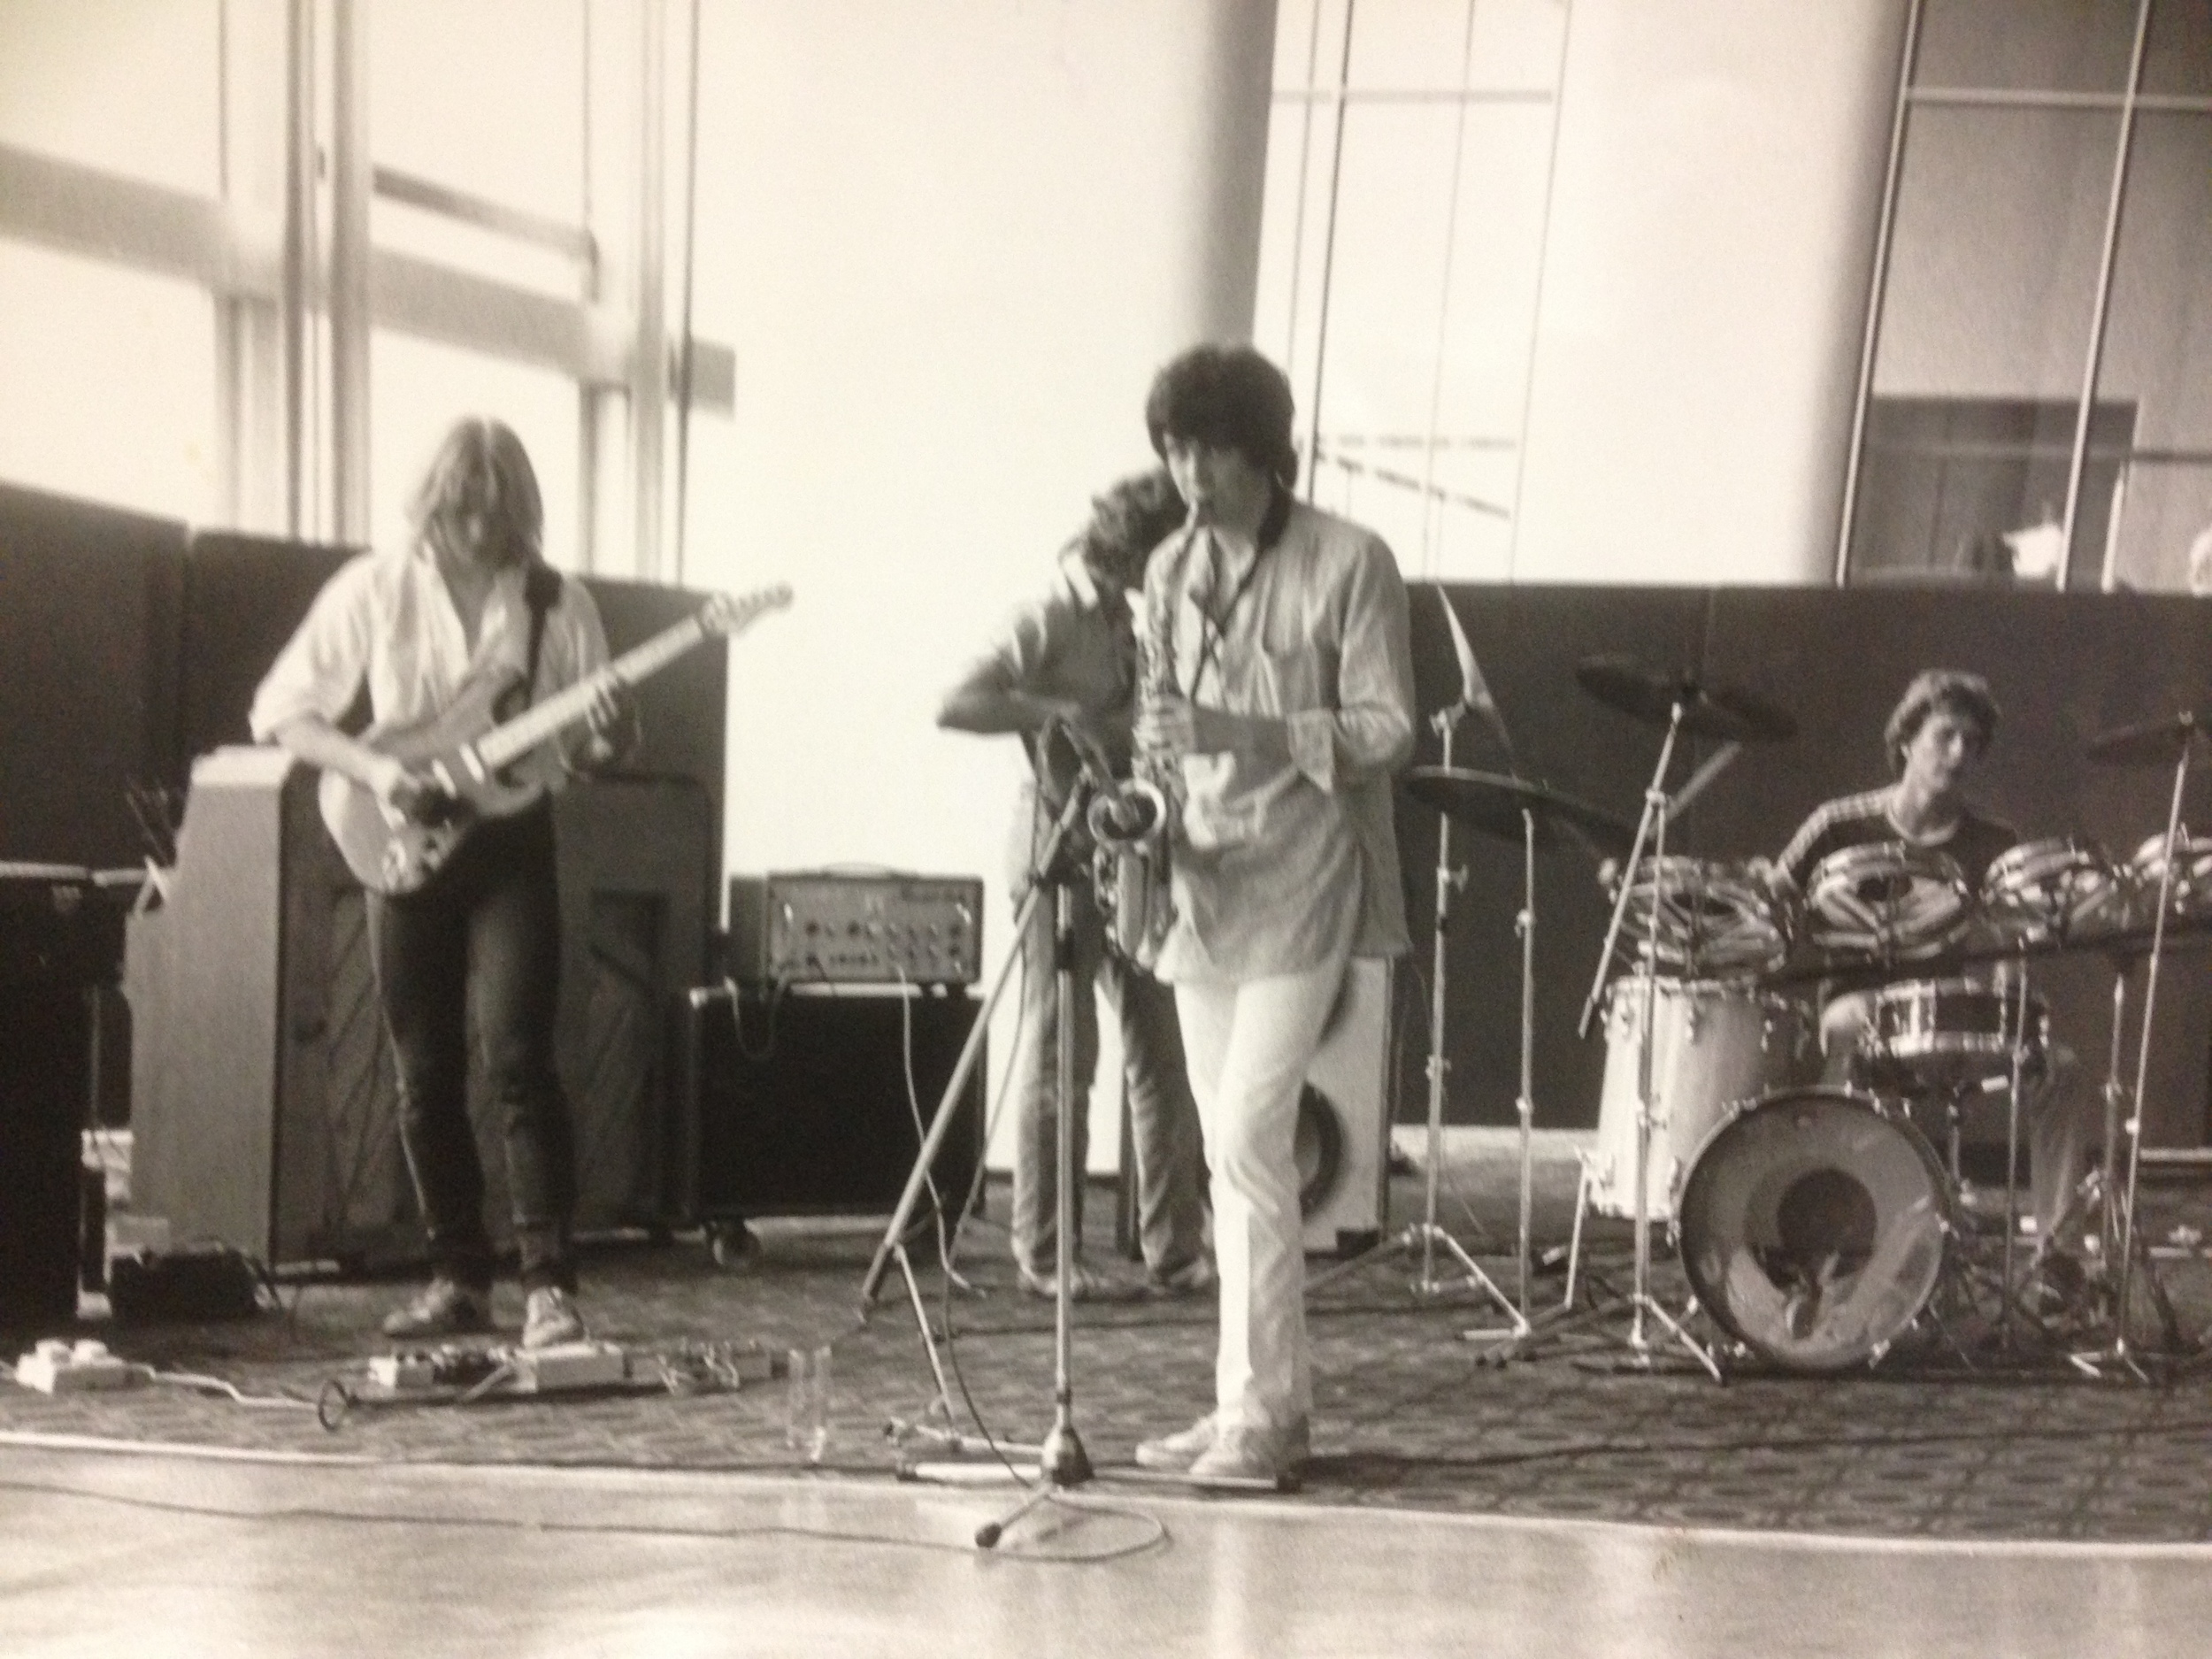 Actual Proof, RFH 1983. Shaun Thompson -sax, Paul Stipetic - drums, Tony Stipetic - Bass, Cliff Brown - guitar